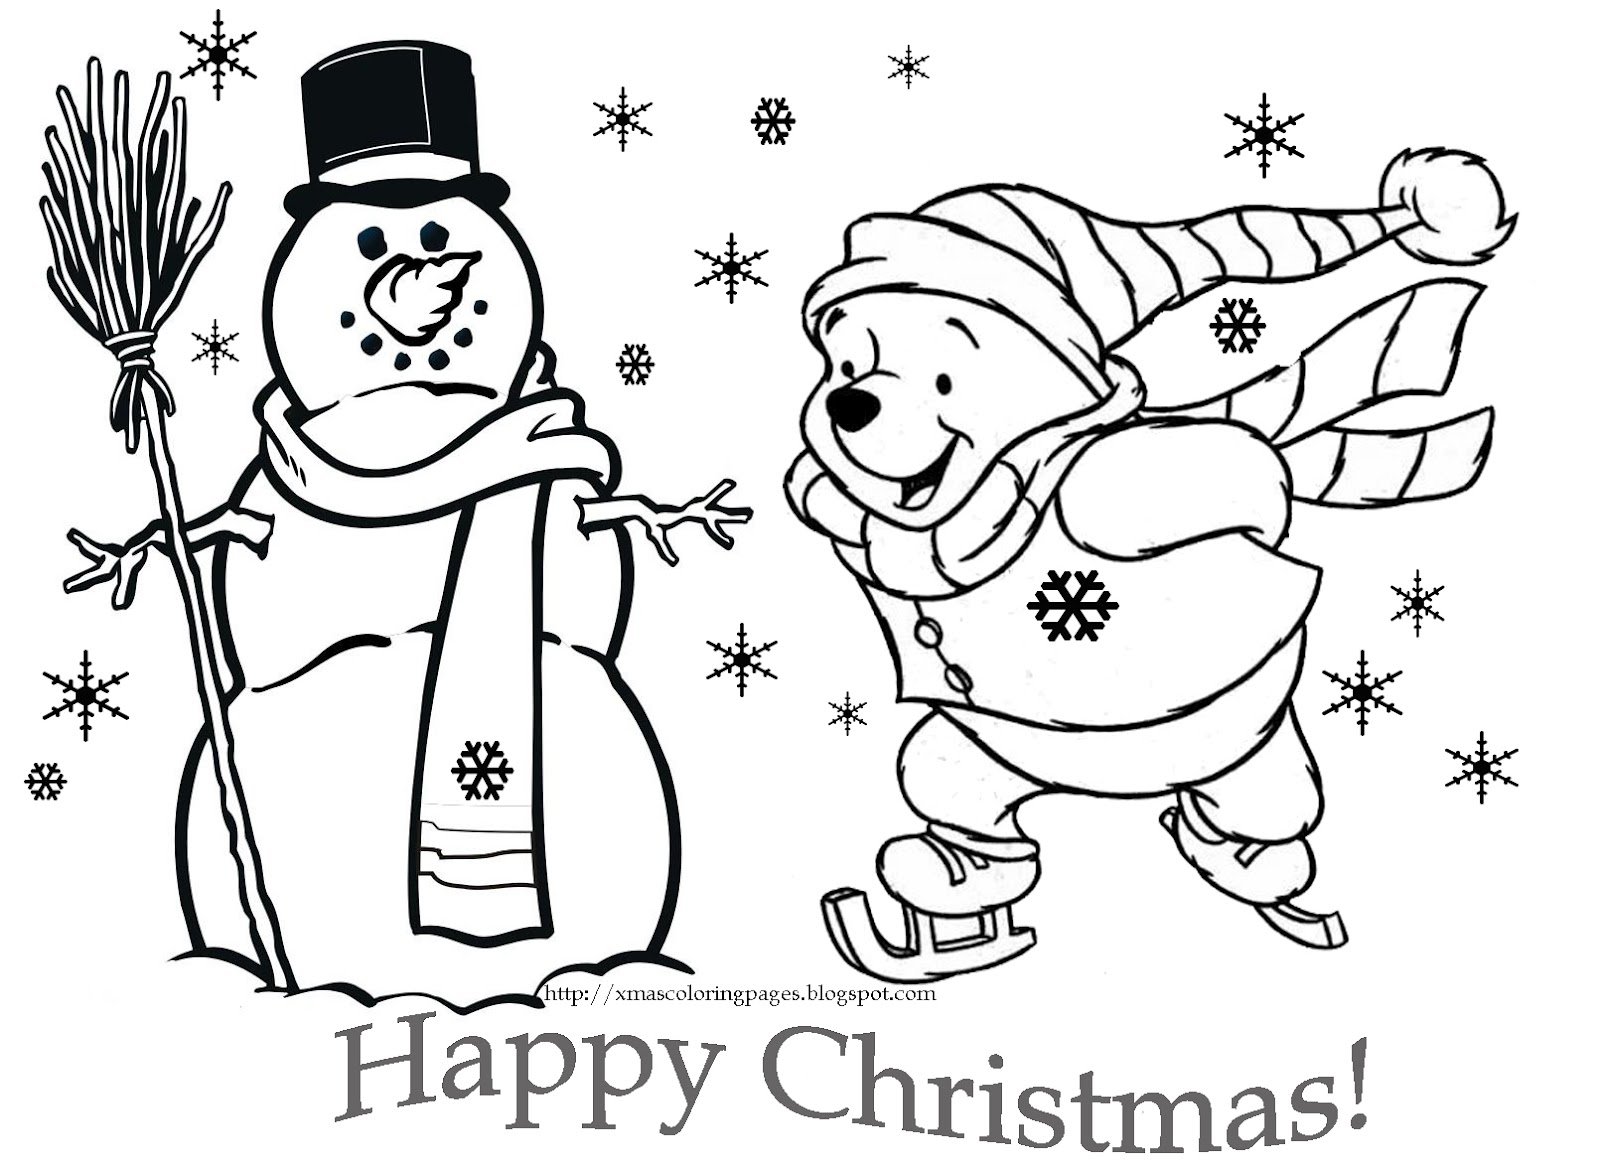 Coloring disney christmas - Coloring Pictures Christmas Free Coloring Pages Winnie The Pooh Christmas 1024x768 Winnie